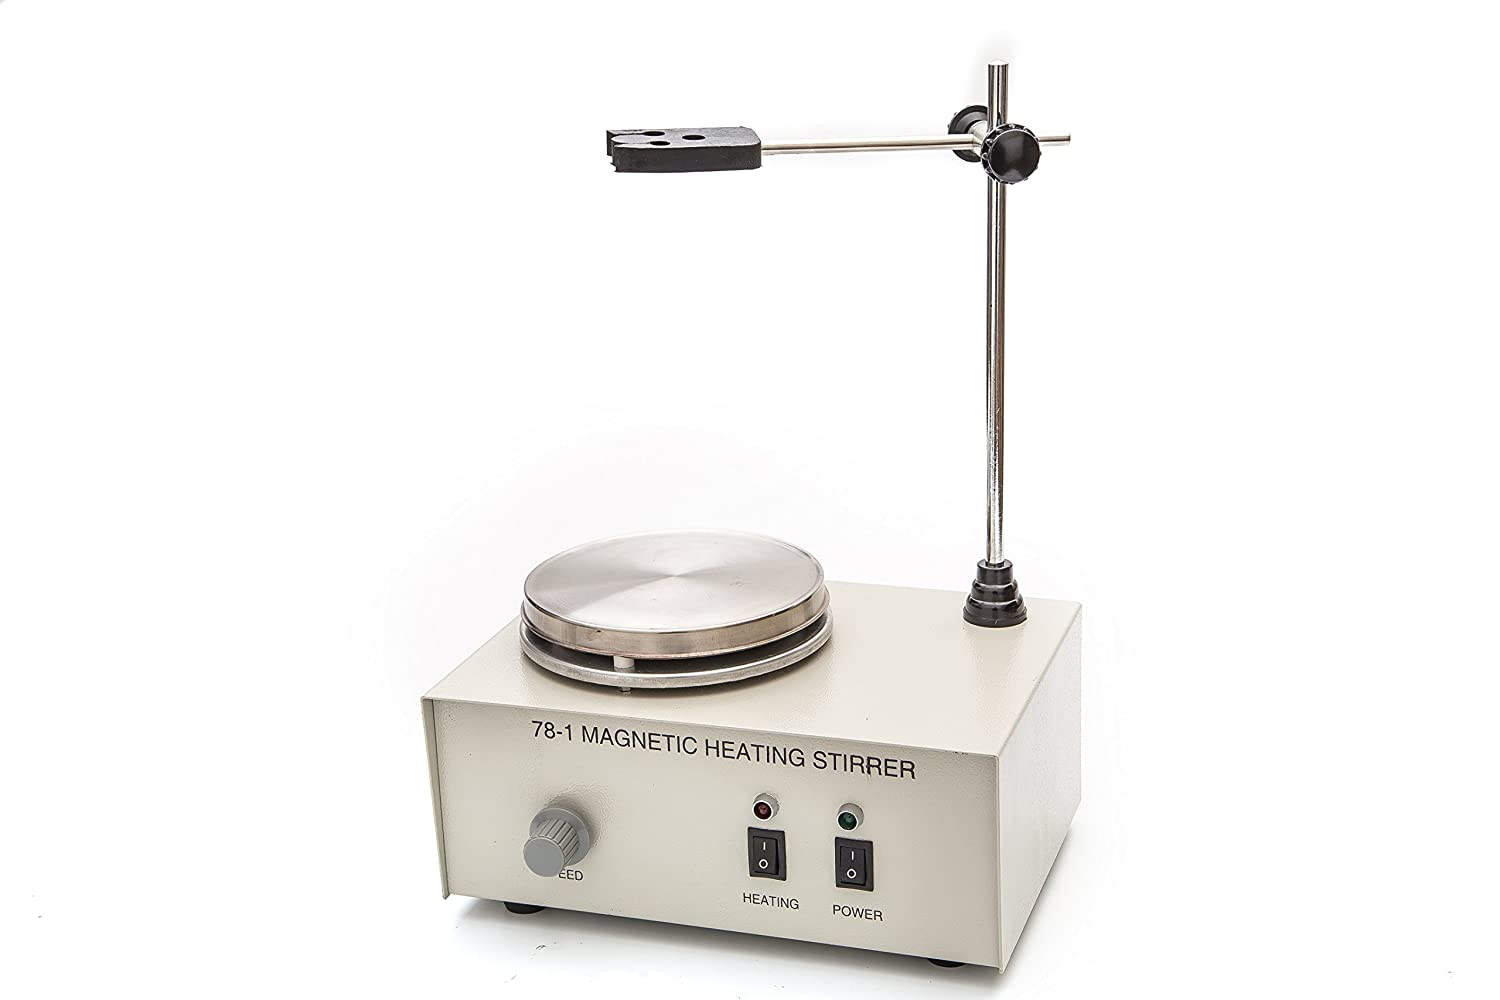 Fristaden Lab 78-1 Analog Magnetic Stirrer Hot Plate Mixer, 1,000mL, 0~2000RPM, 150W Heating Power 250°C Max Independently Controls Temperature and Speed